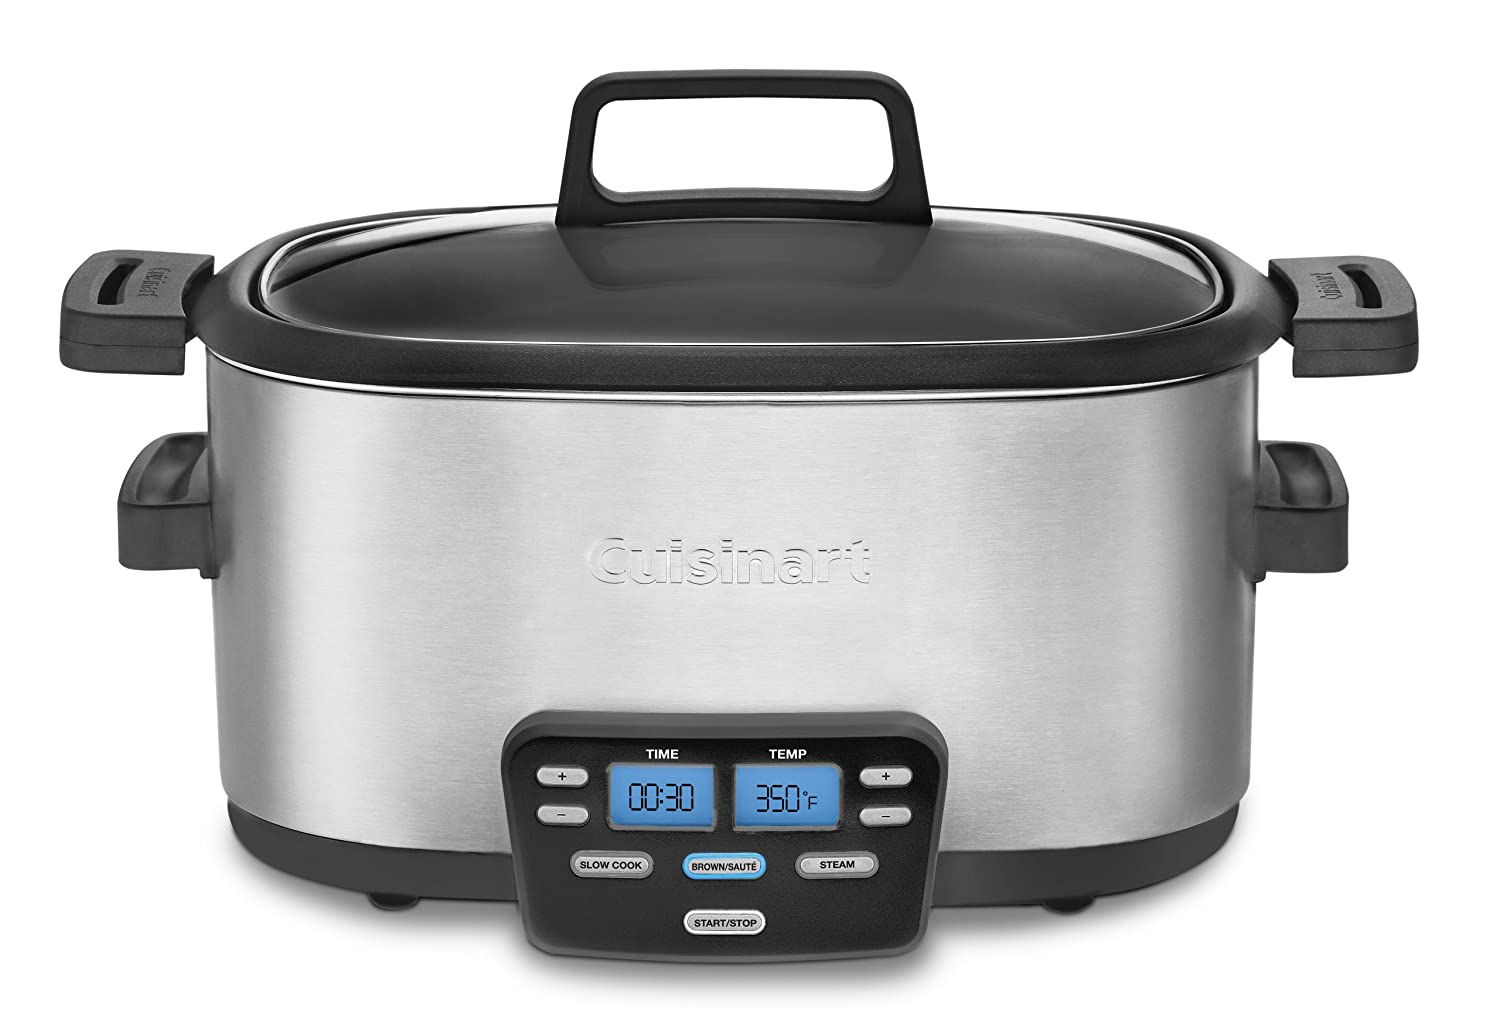 Cuisinart MSC-600 Best Price Sale